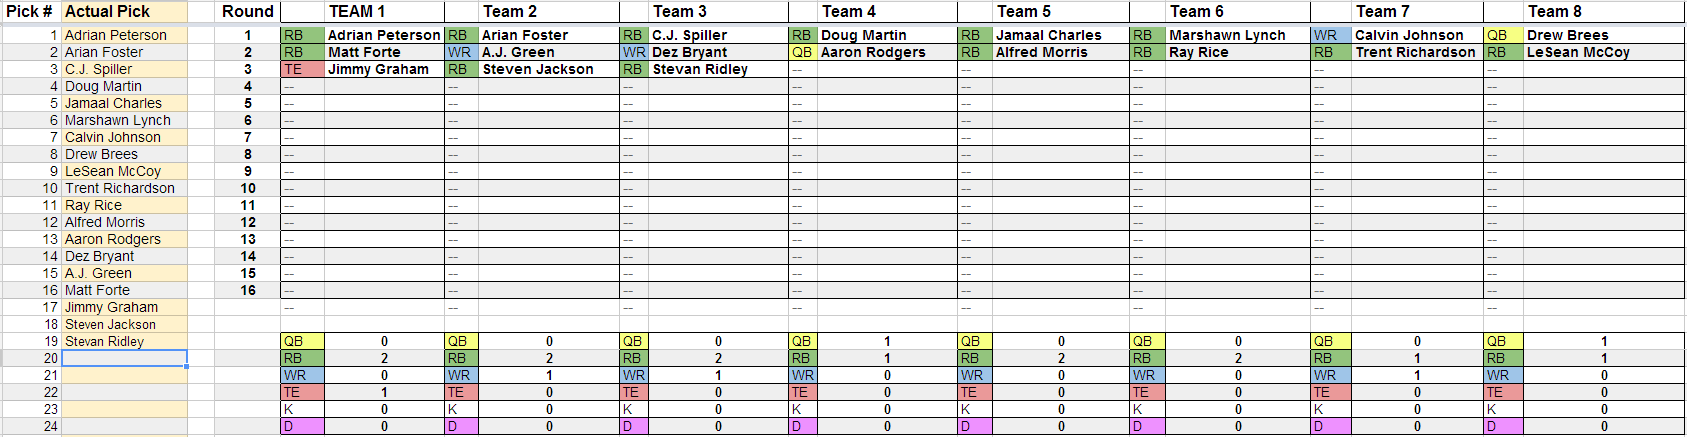 Fantasy Football Draft Spreadsheet, Download Fantasy Football Draft